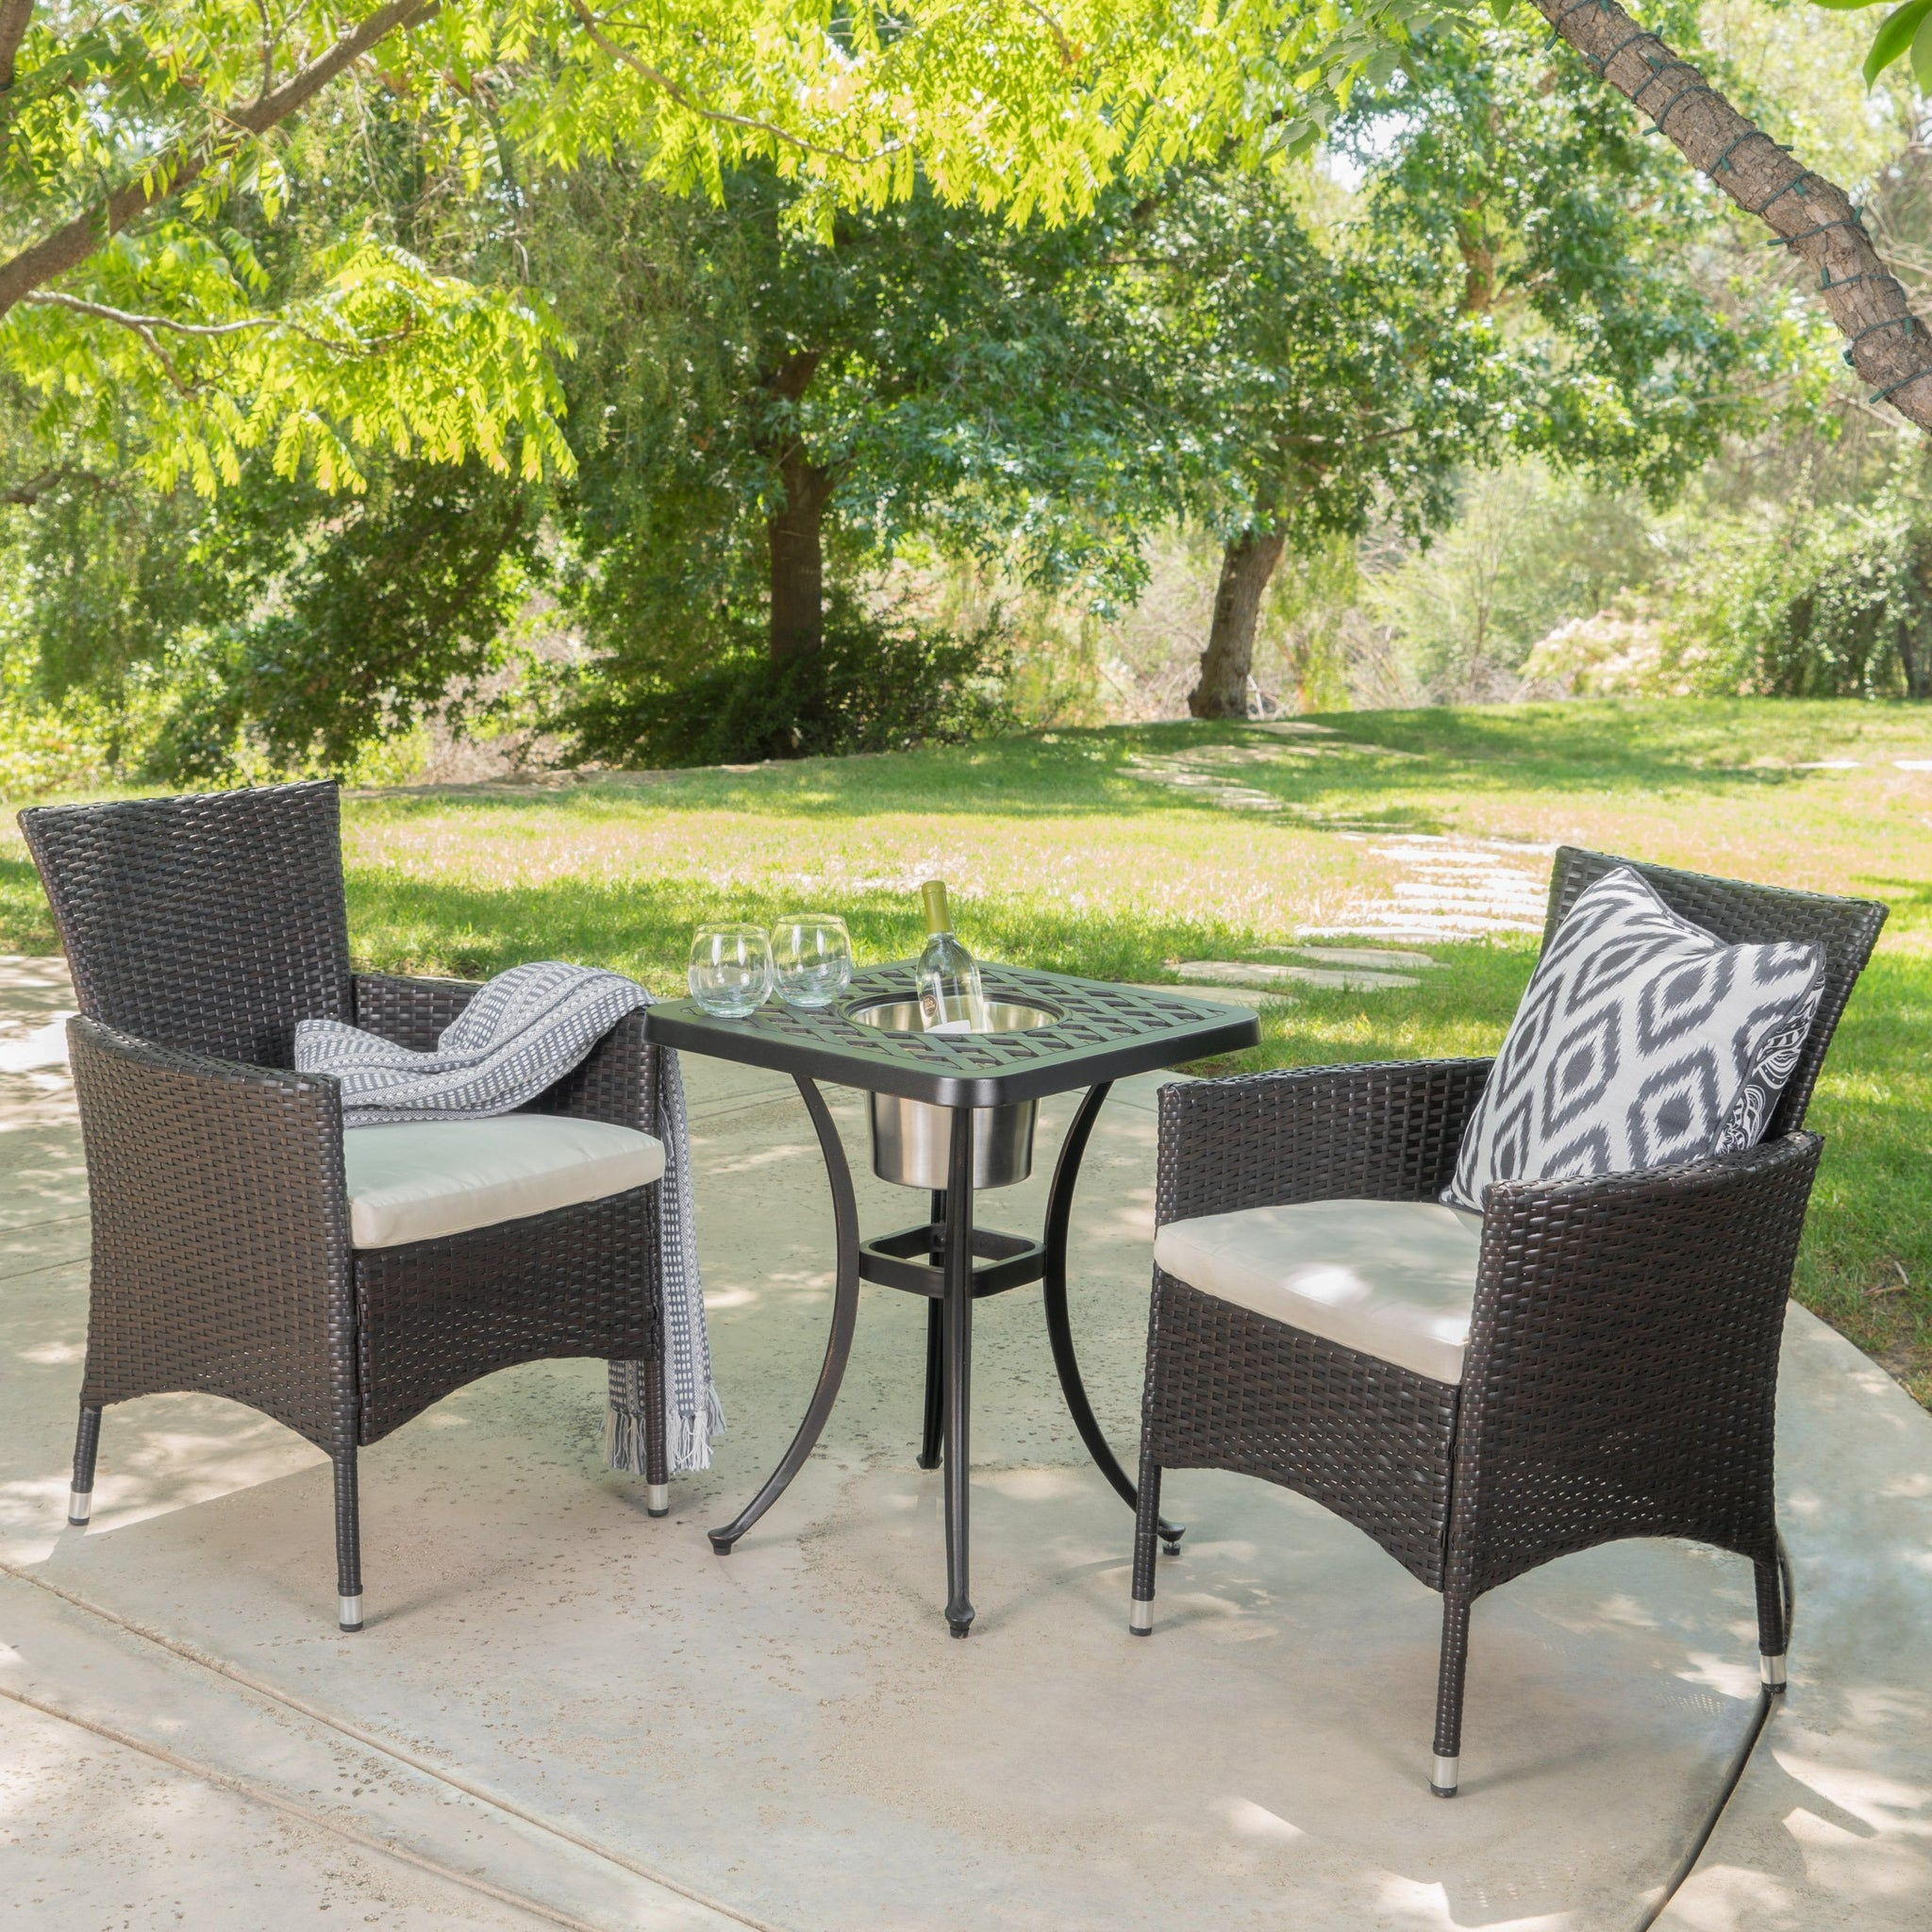 Auley Outdoor 3 Piece Aluminum And Wicker Bistro Set With Water Resistant Cushions